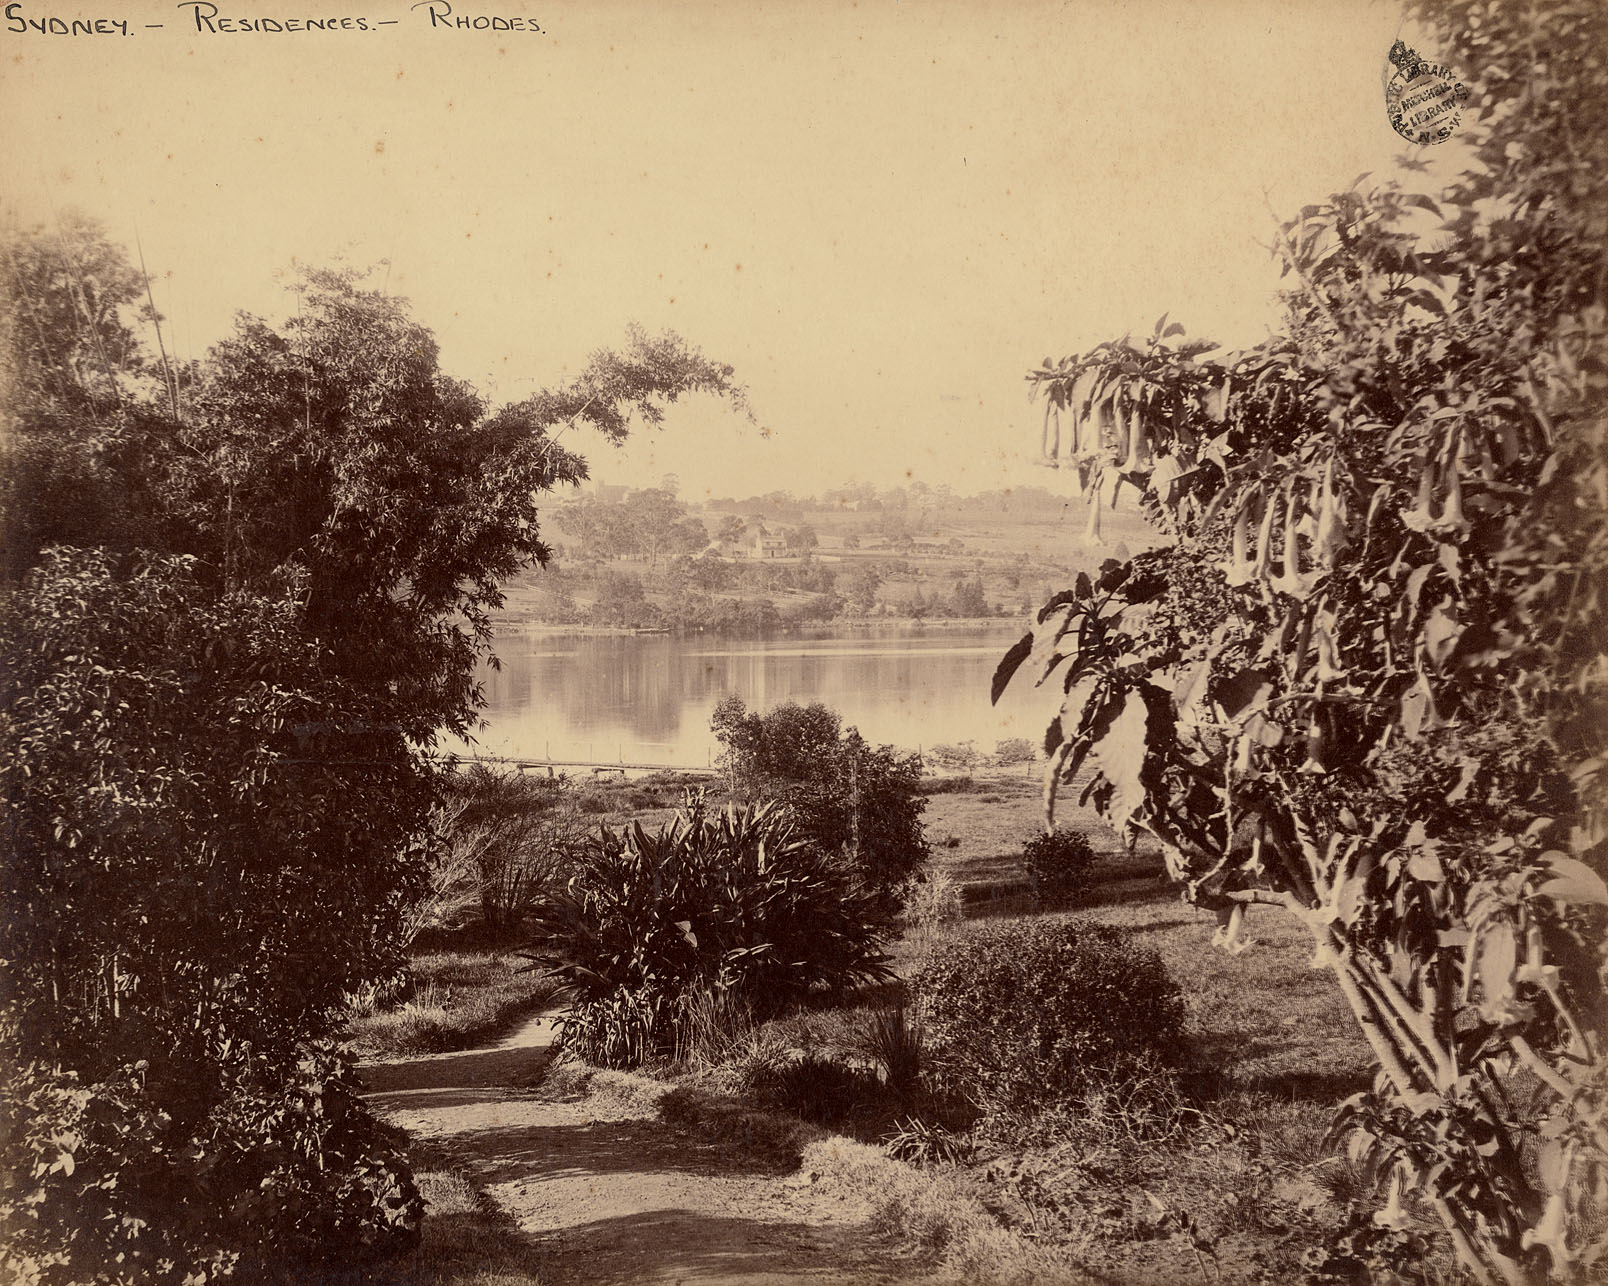 Photograph of a lake through some bushes, with a landscape and some building structures in the background.